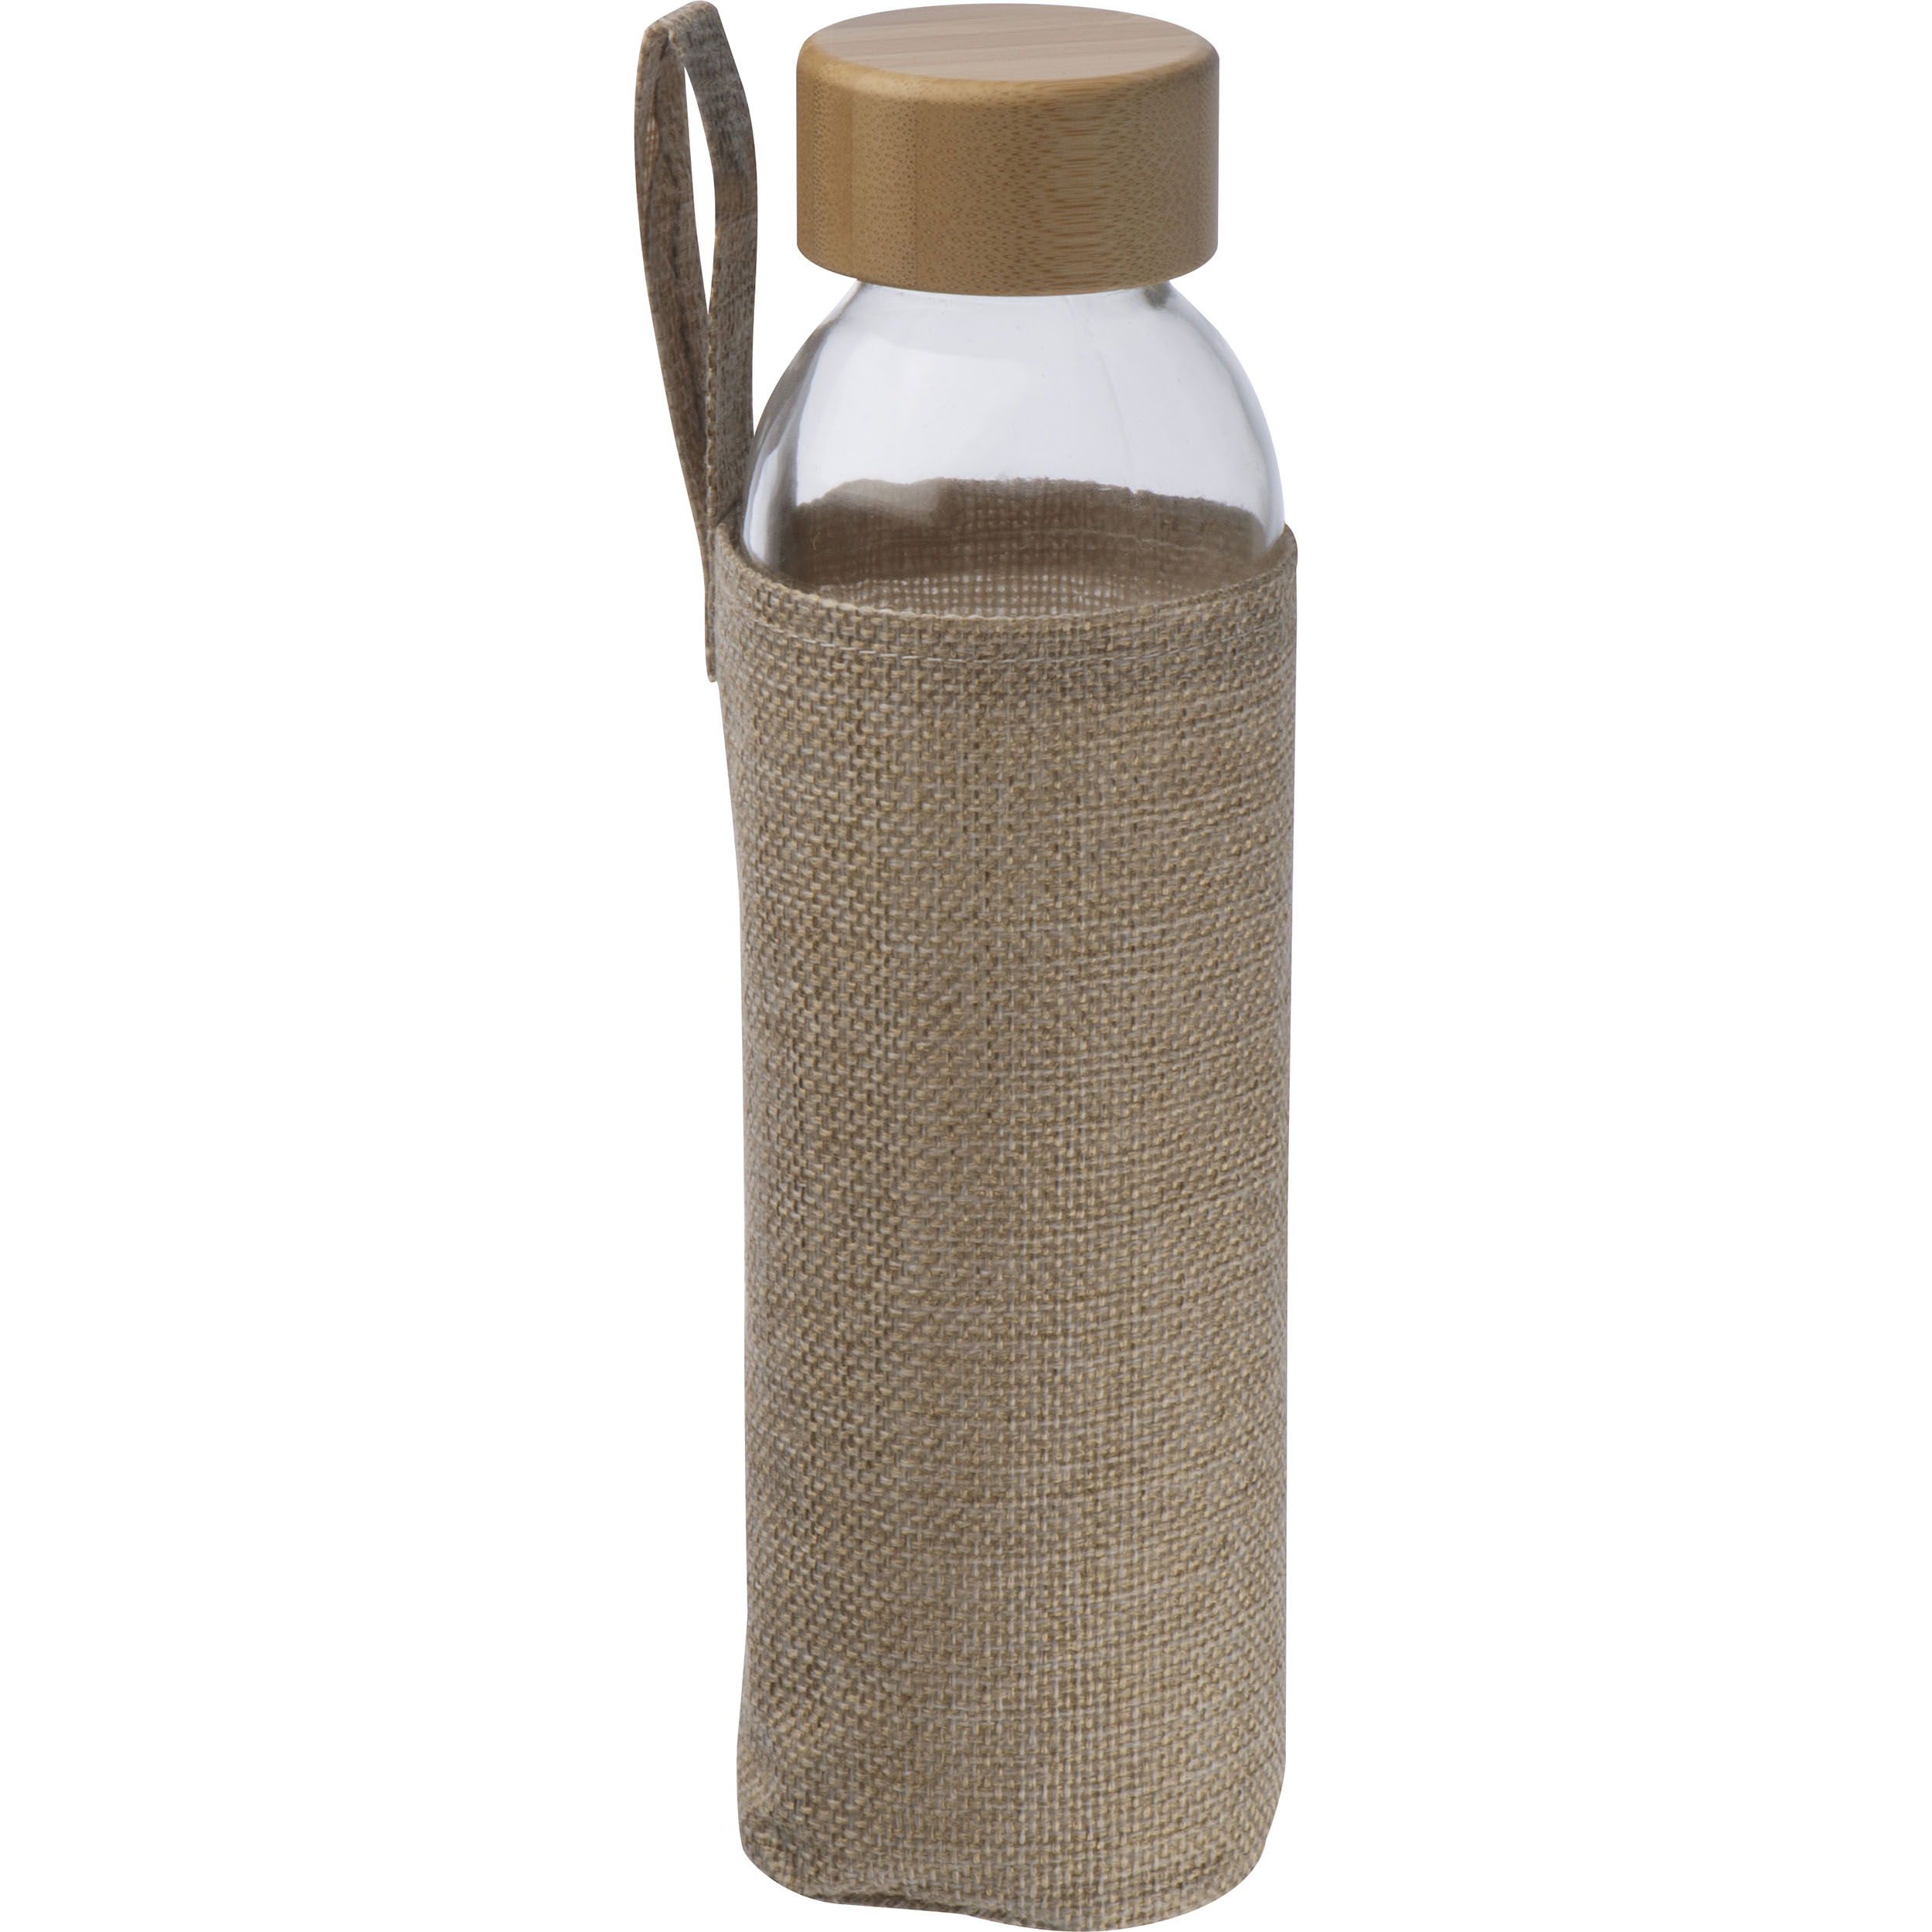 Glass Bottle with Bamboo Lid and Jute Cover